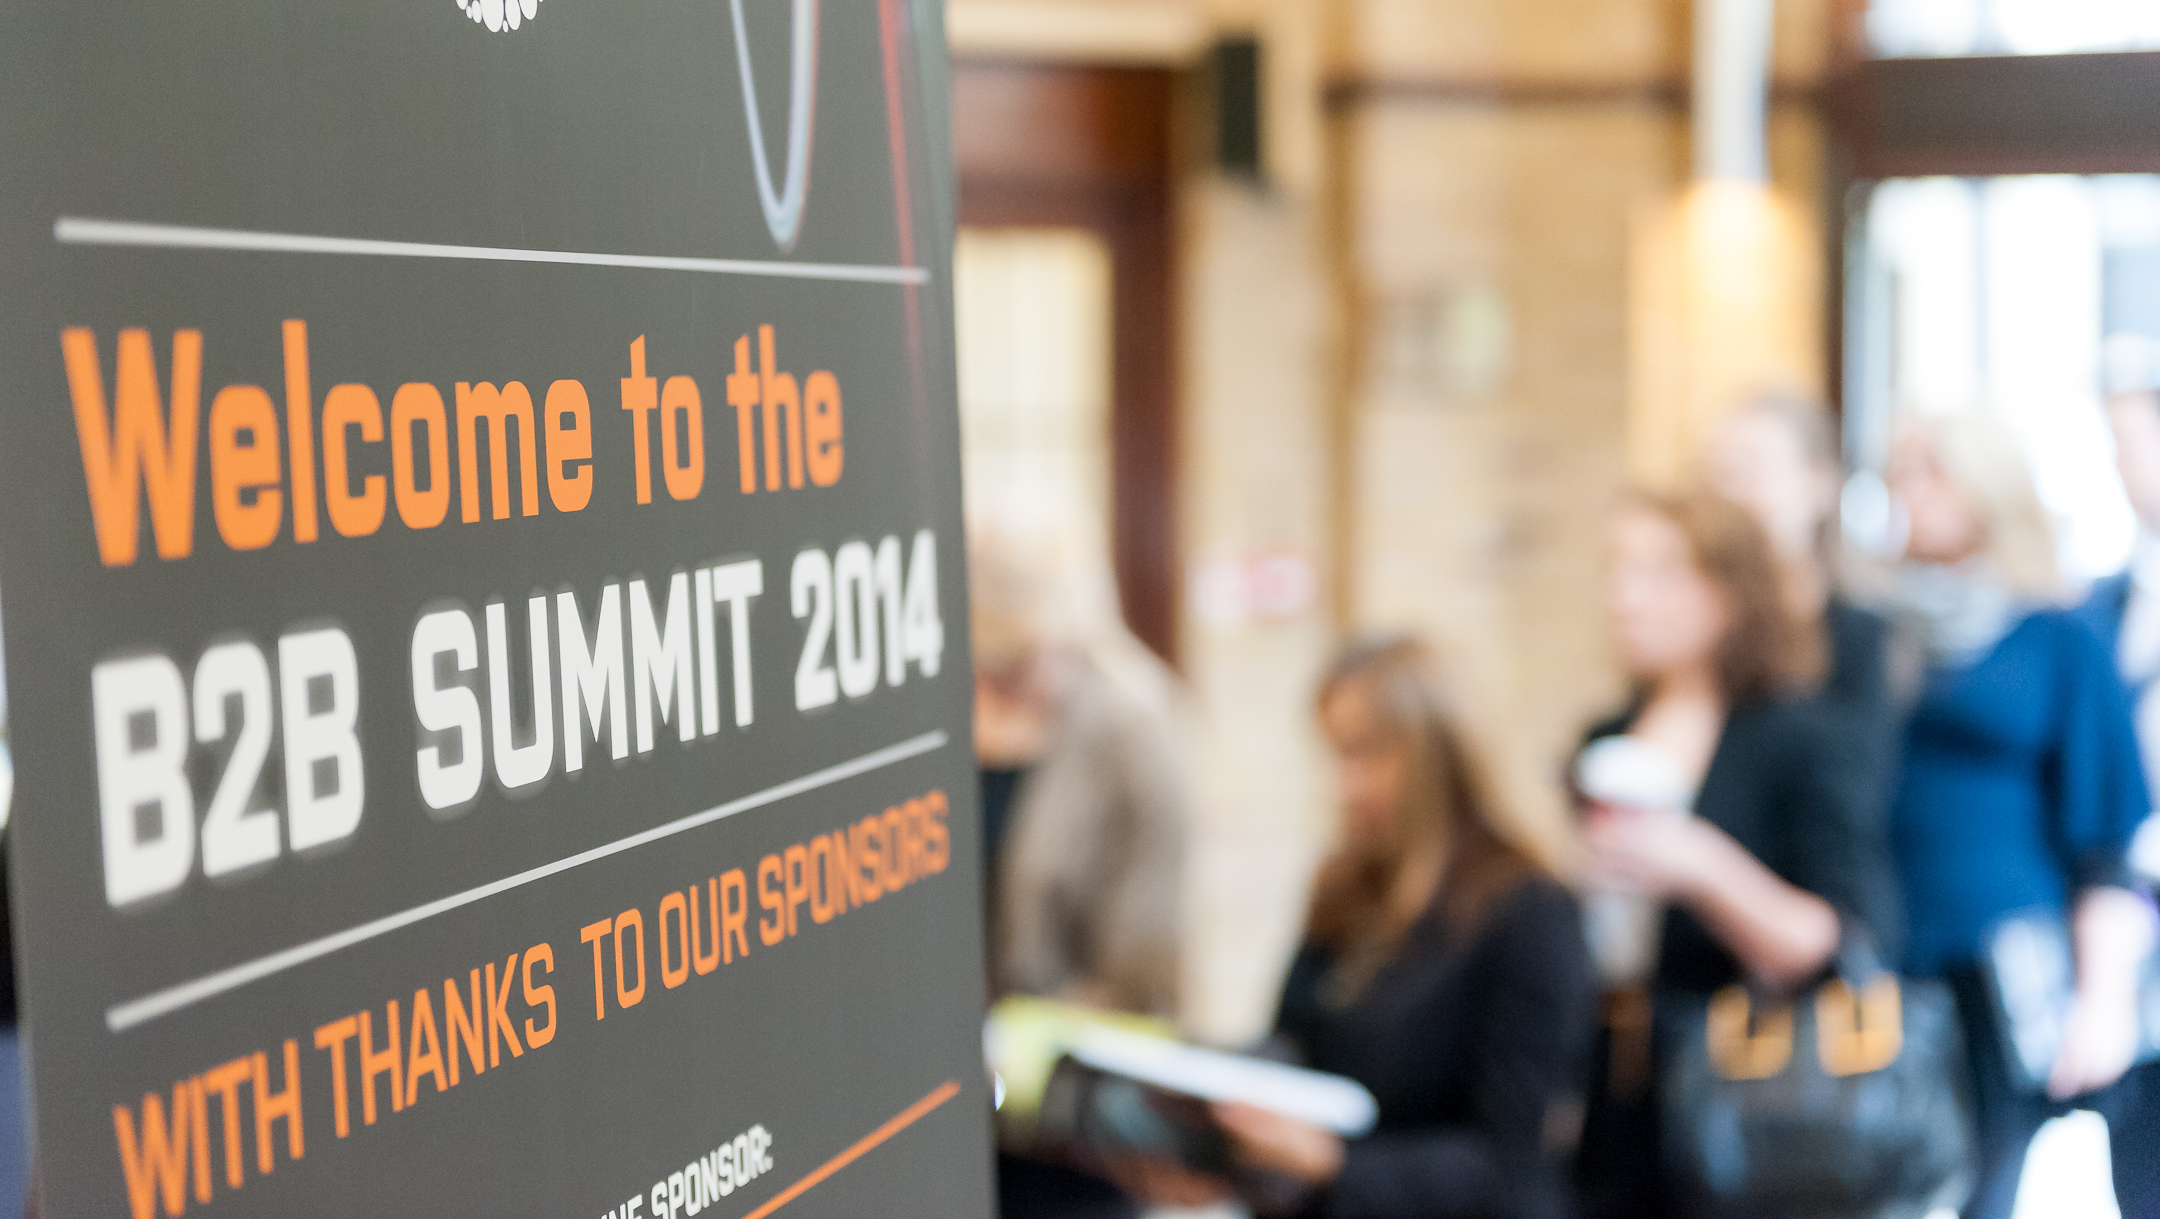 Welcome to the B2B Summit